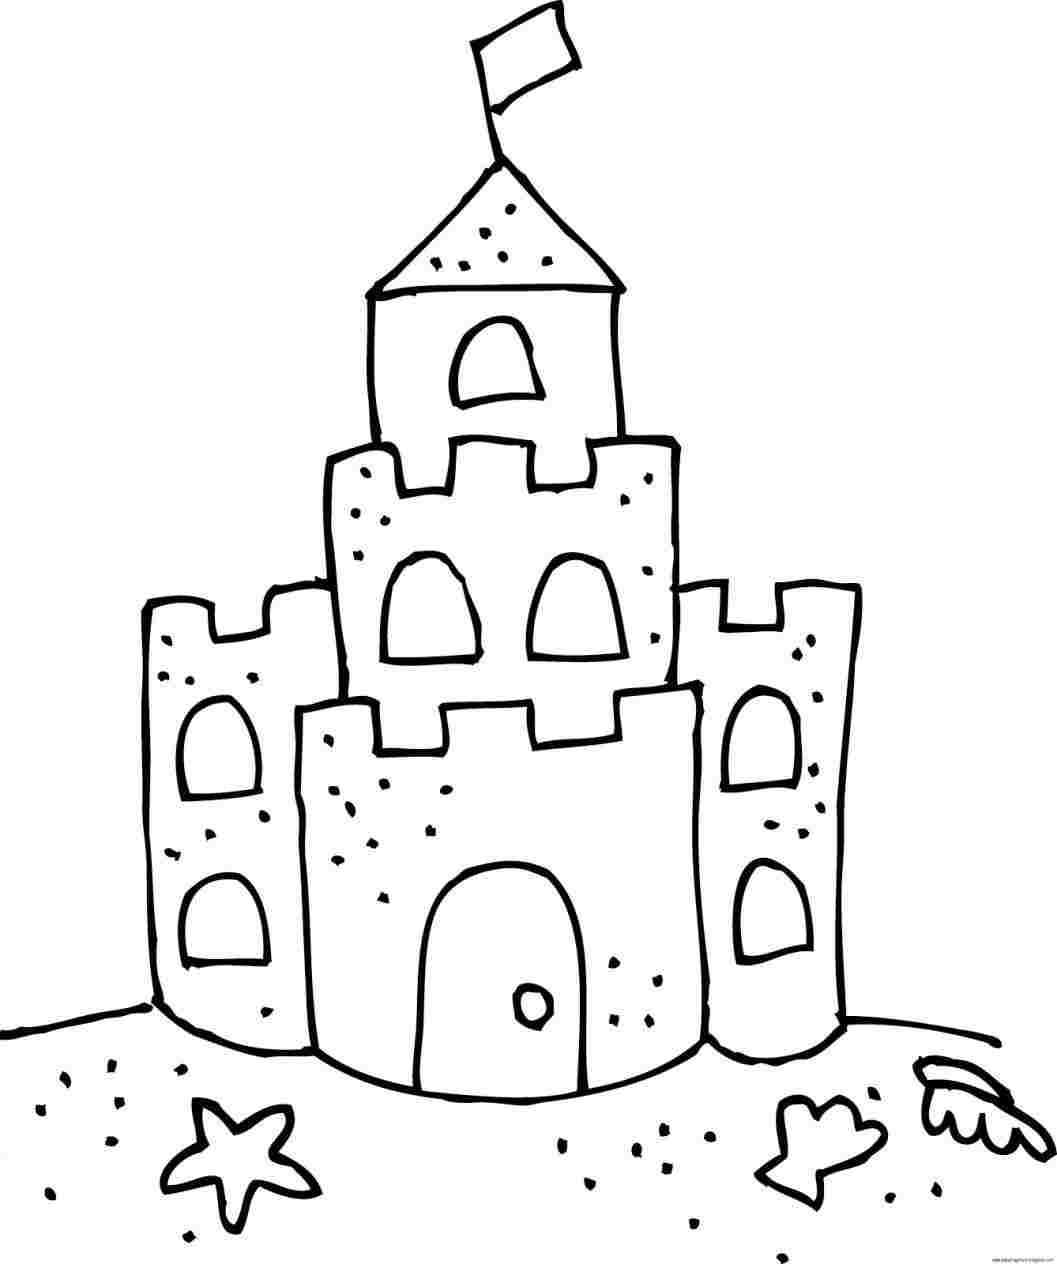 easy castle drawing simple castle drawing at paintingvalleycom explore drawing castle easy